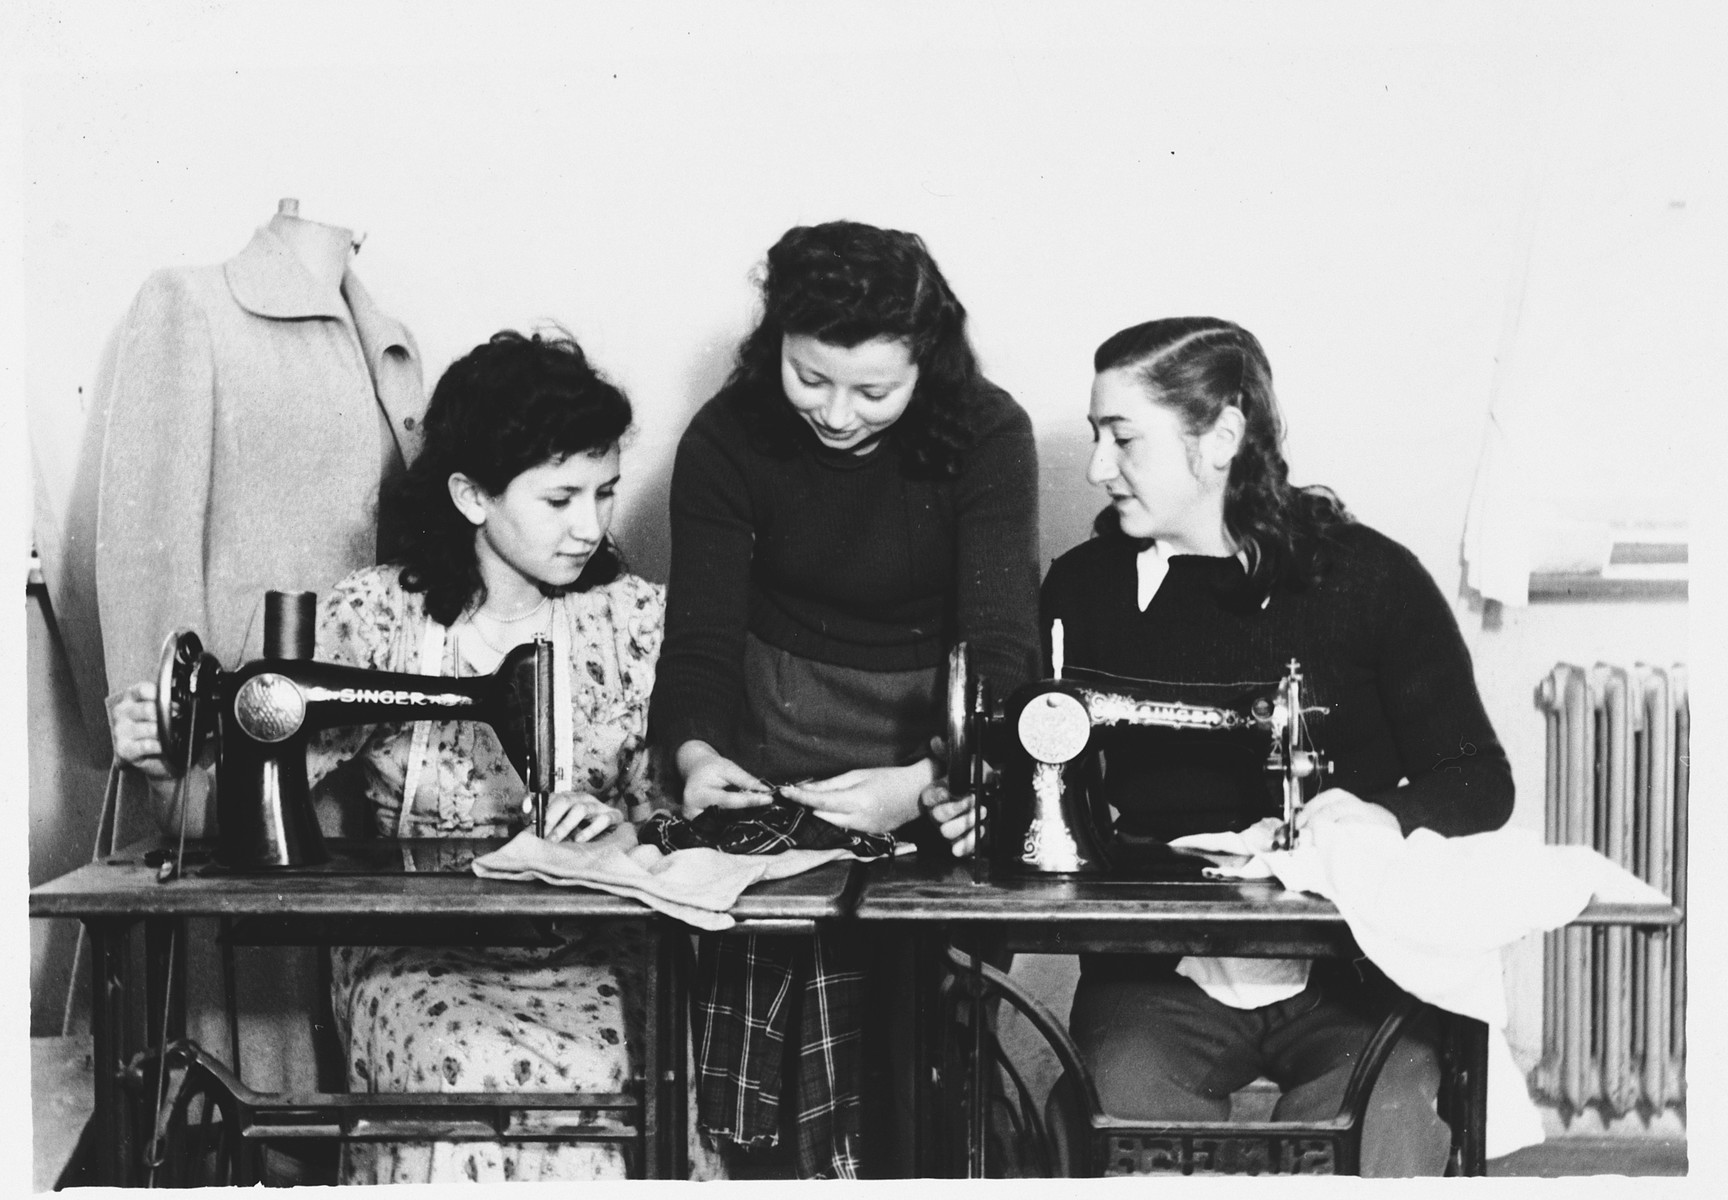 Young women learn to sew in an ORT school in the Foehrenwald displaced persons camp.